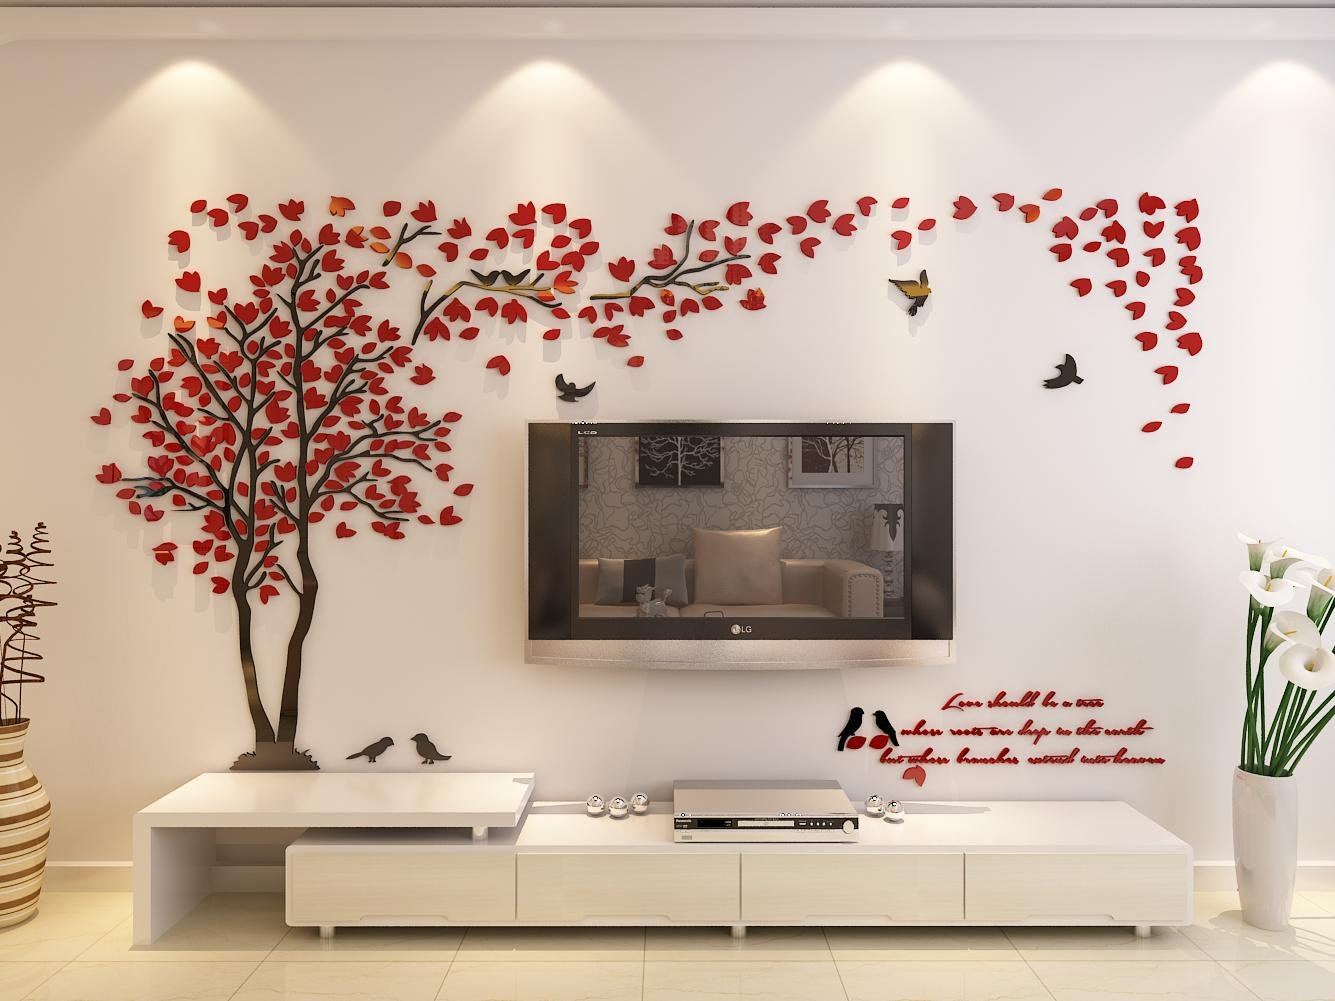 amazon com 3d couple tree wall murals for living room bedroom amazon com 3d couple tree wall murals for living room bedroom sofa backdrop tv wall background originality stickers gift diy wall decal home decor art